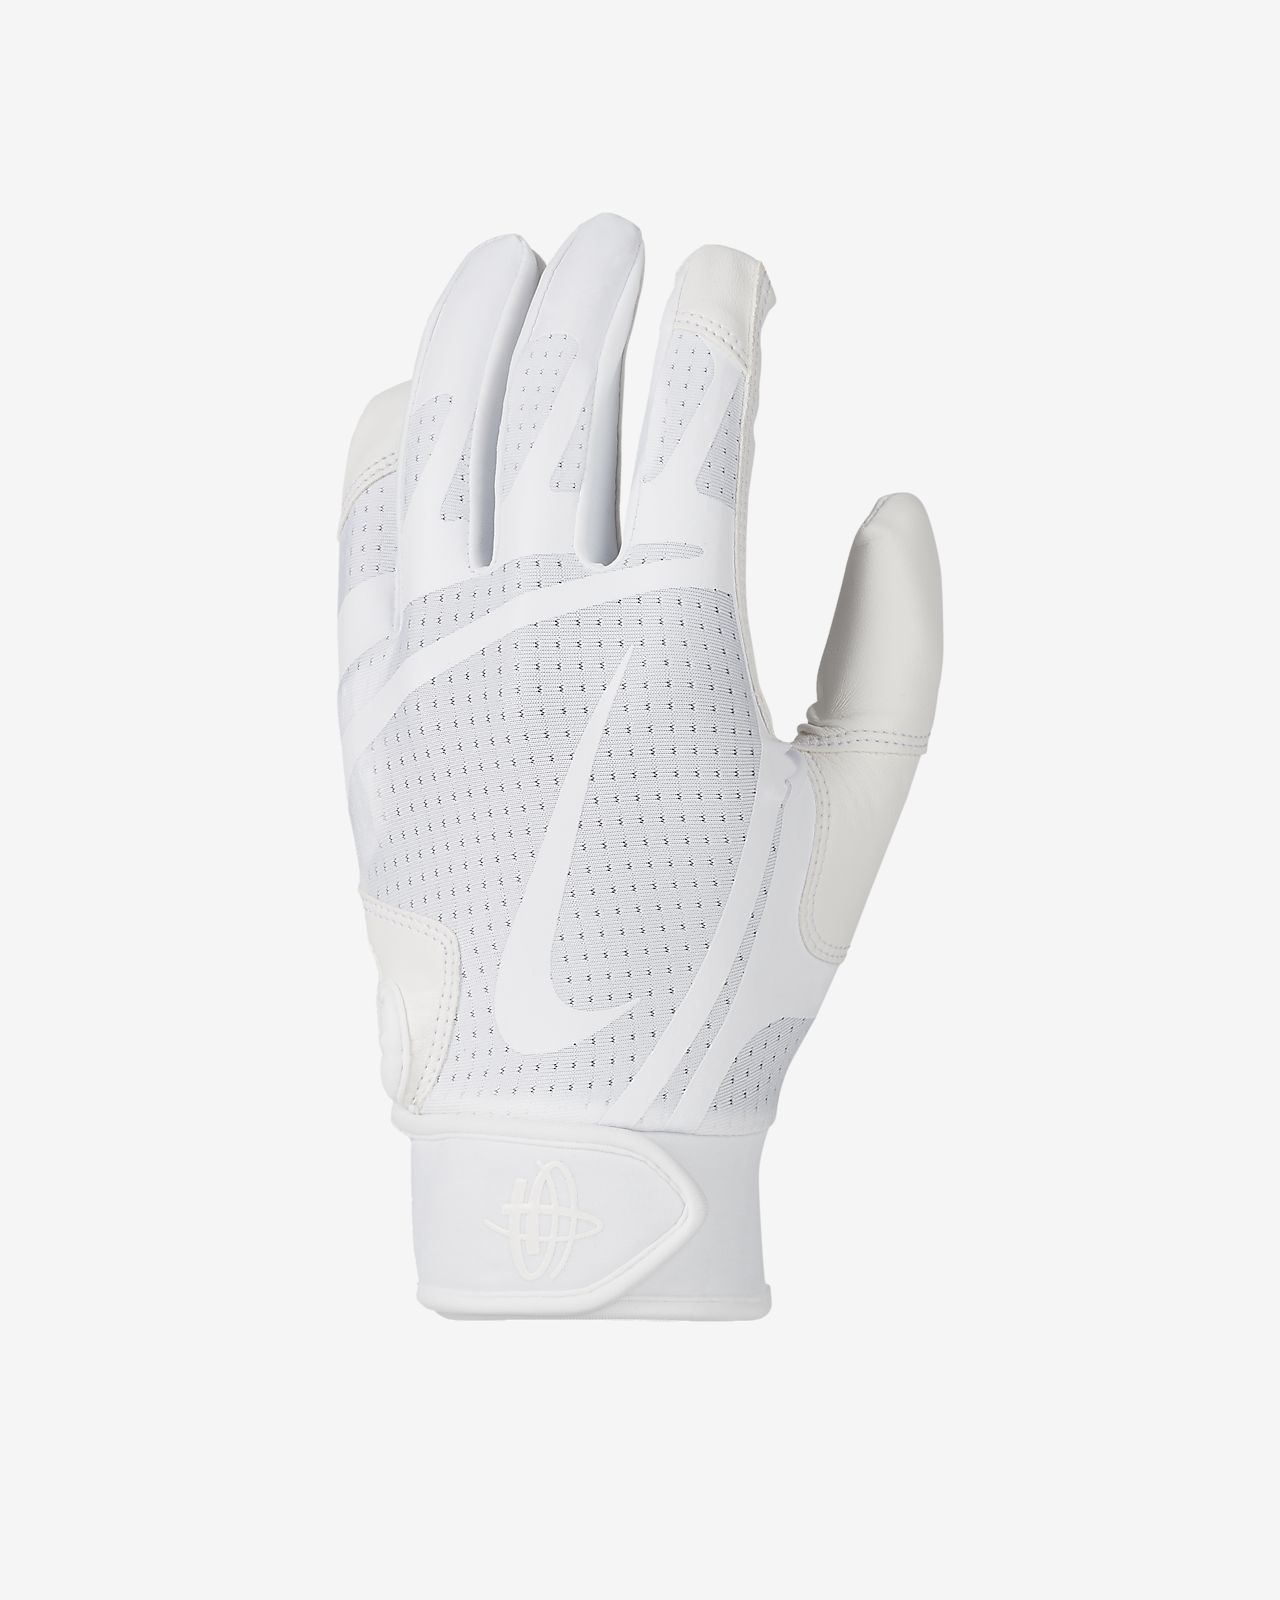 Nike Huarache Edge Baseball Batting Gloves